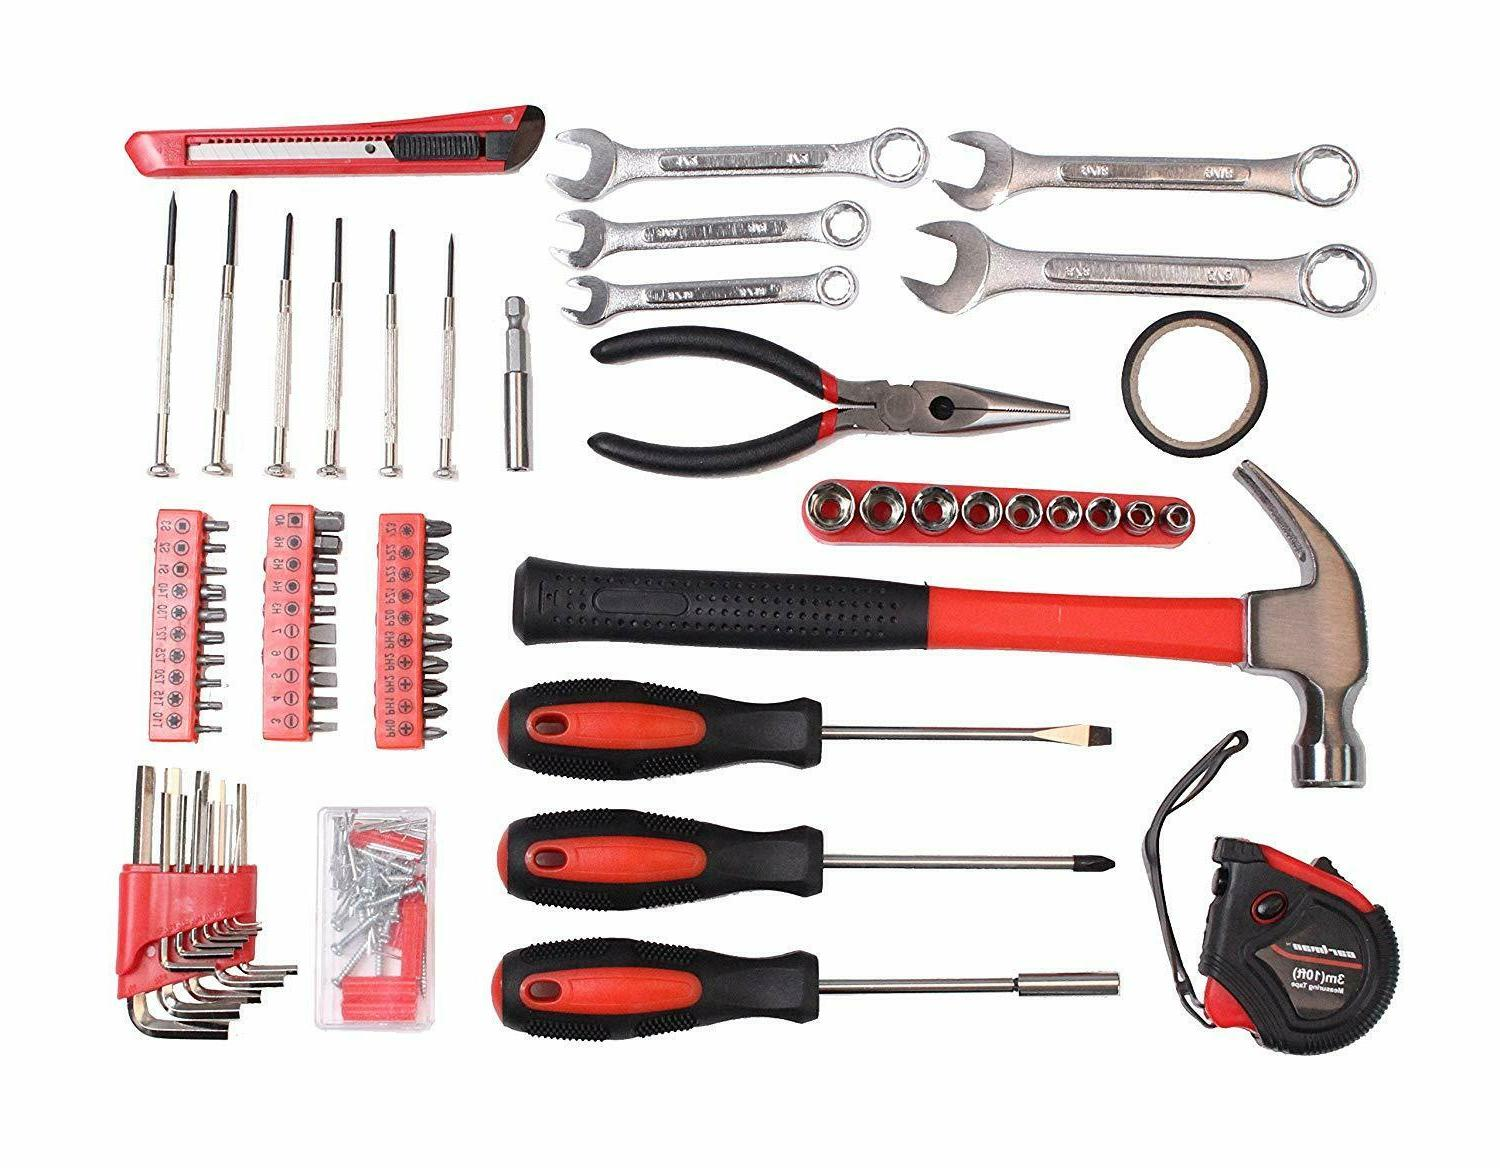 Tool Set Hammer Screwdrivers Pliers Measuring Tape Wrench